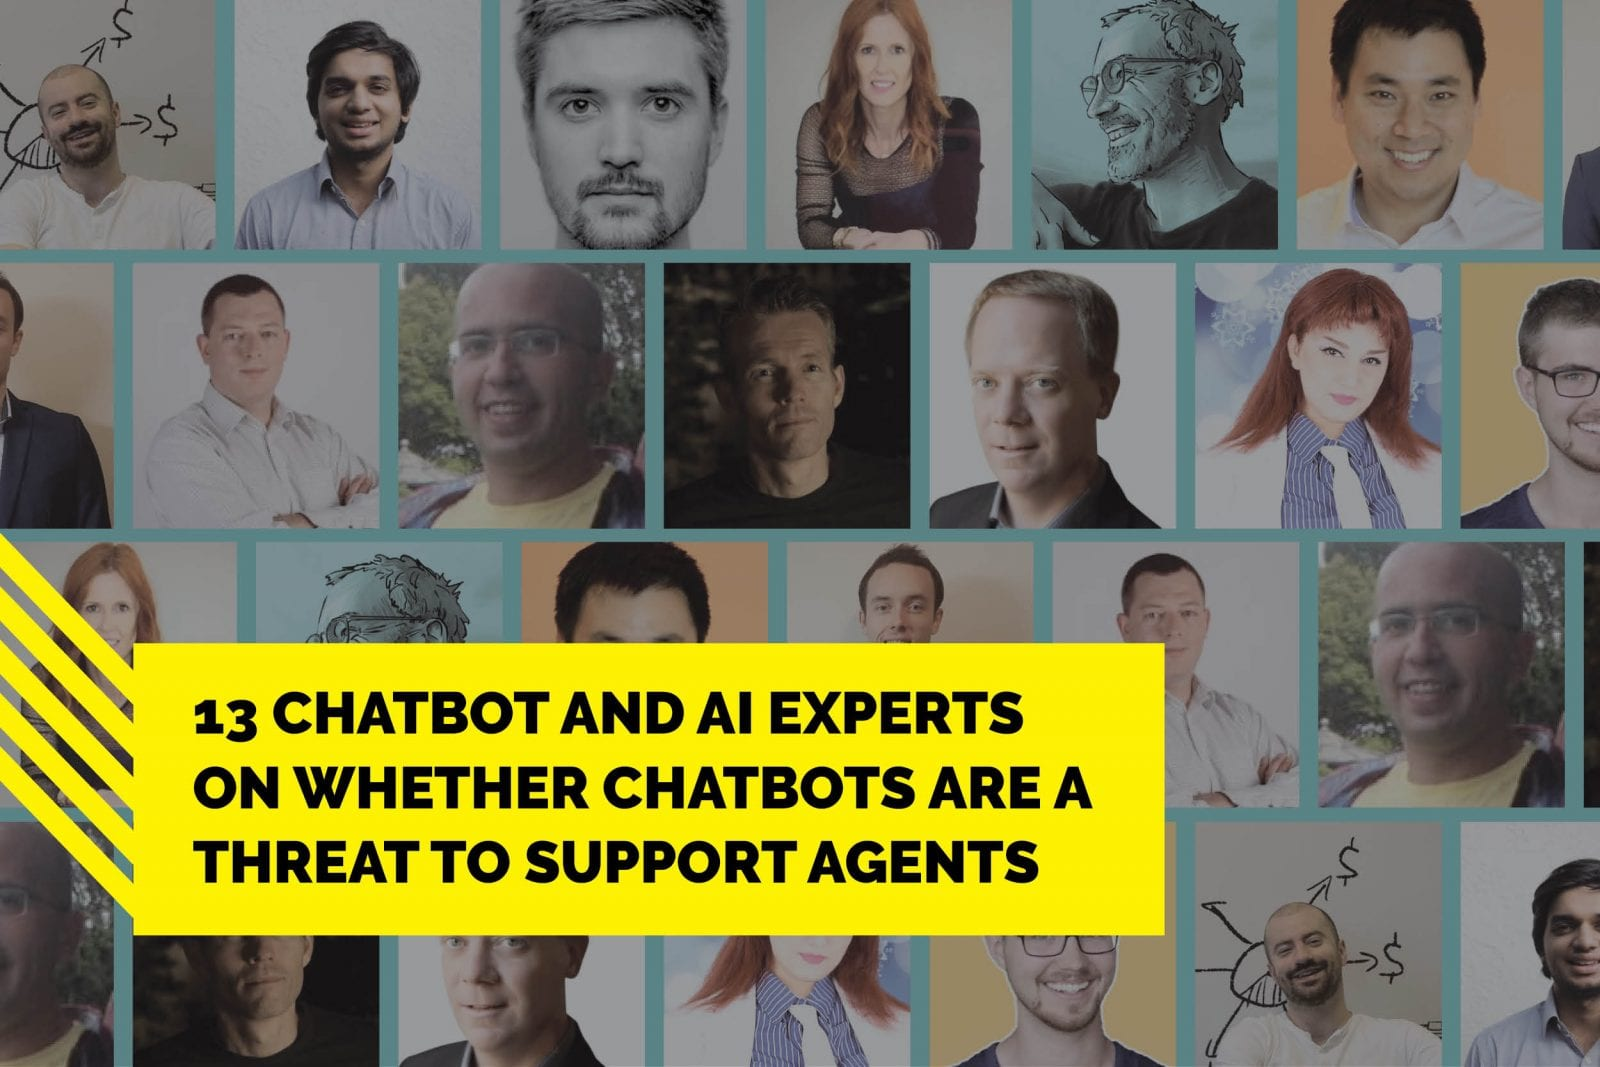 AI Experts on chatbots